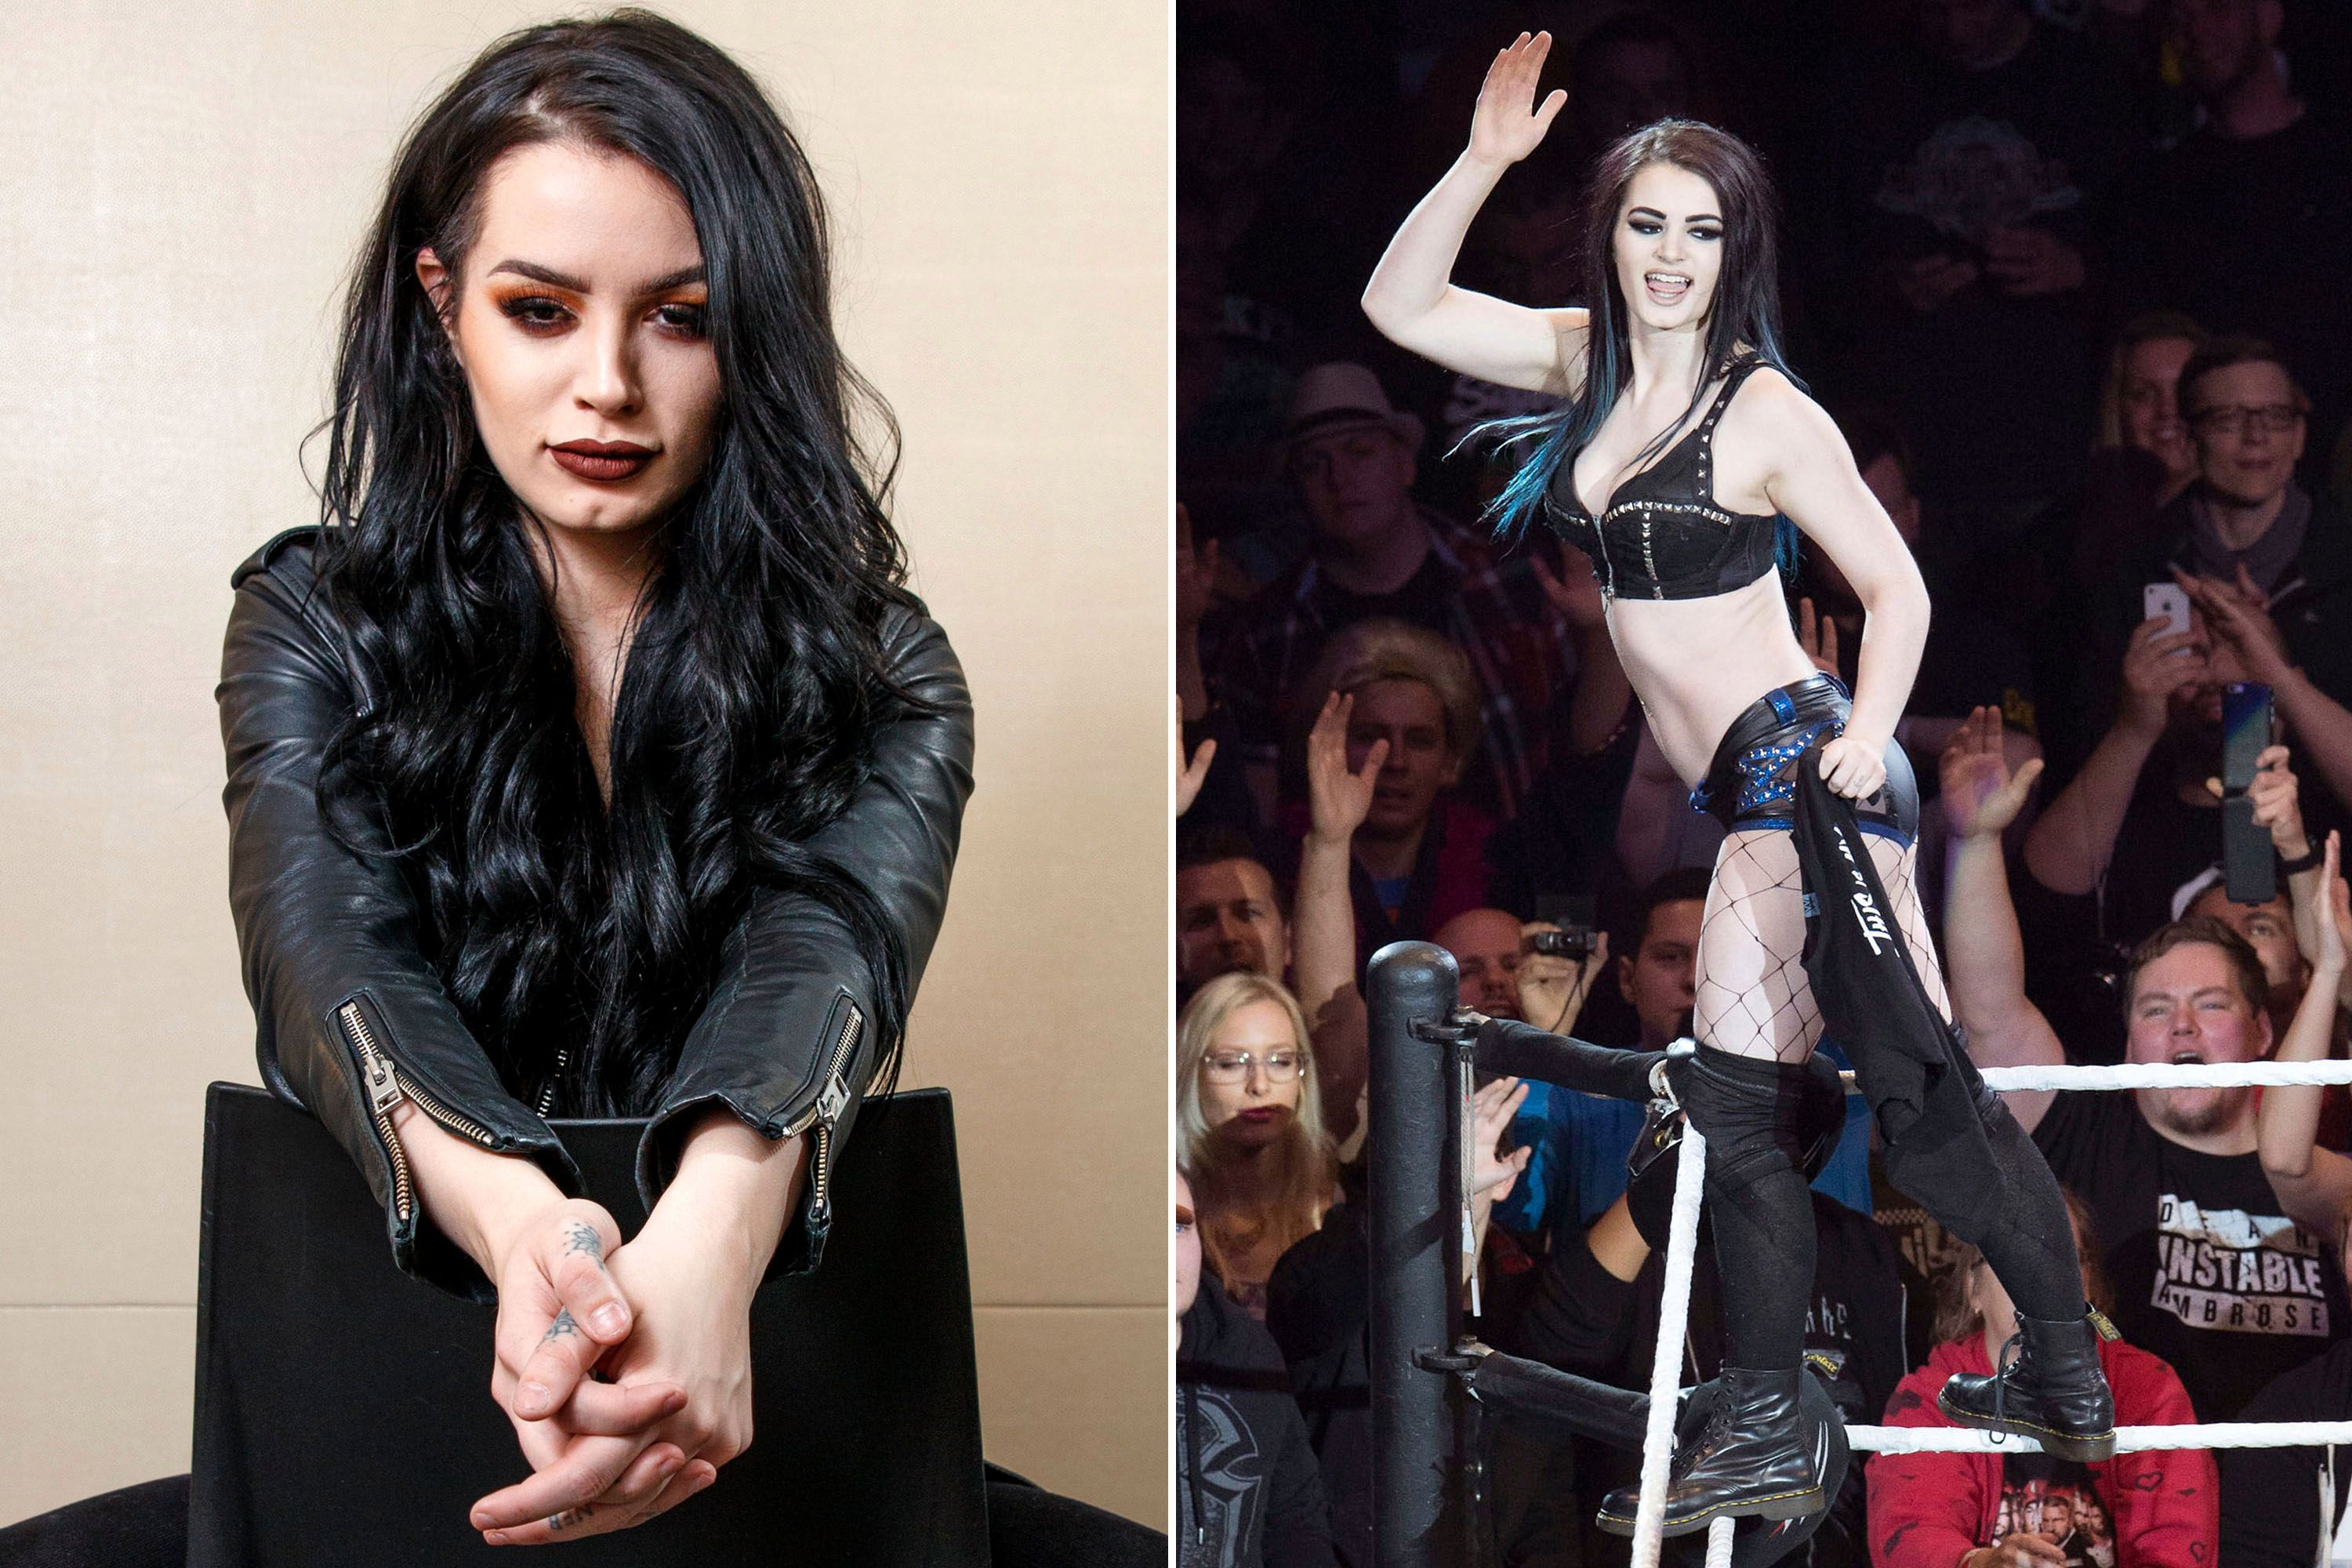 WWE star Paige on sex-tape humiliation: 'I don't wish that ...